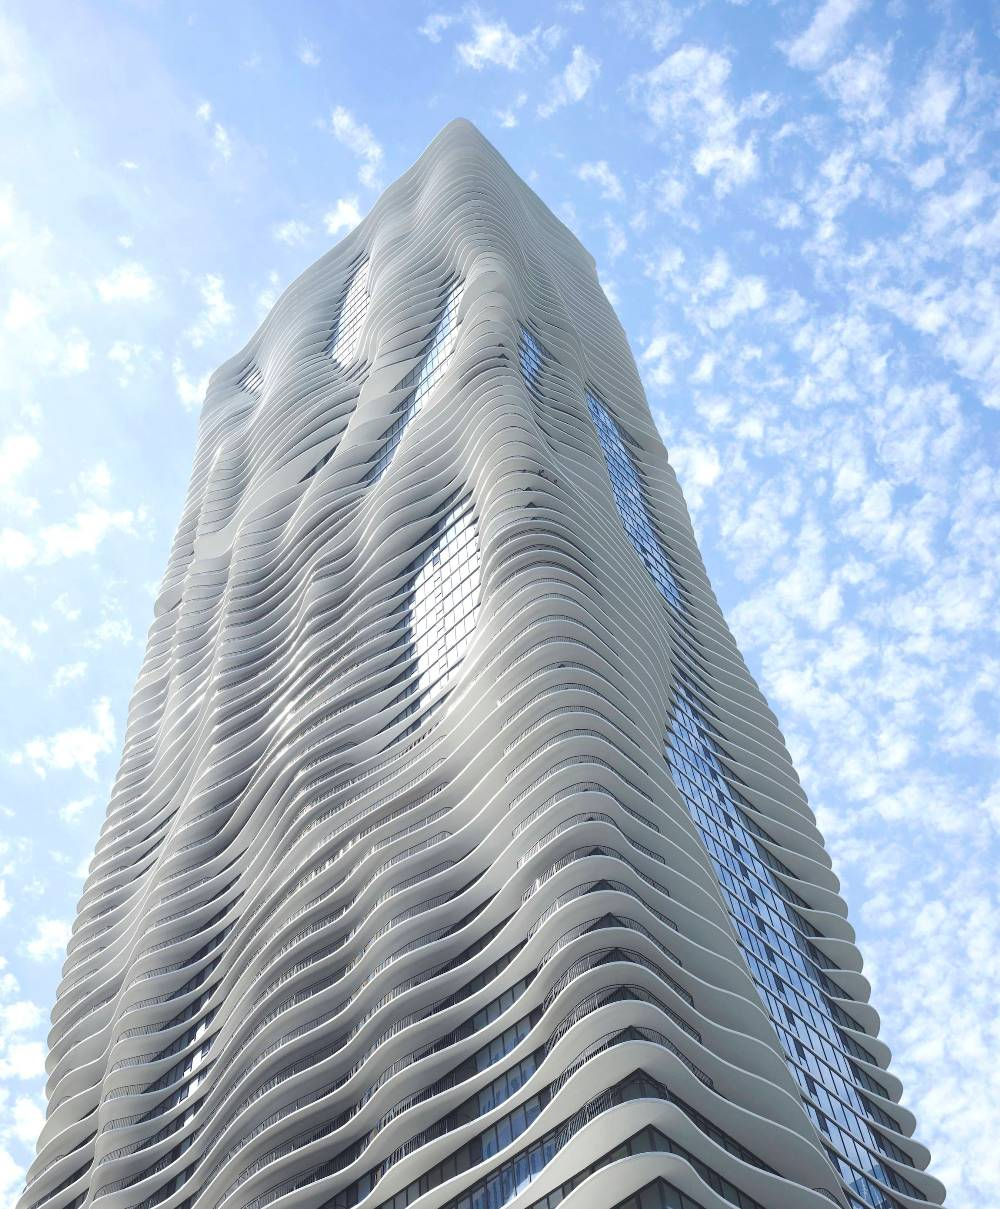 Chicago Aqua Tower